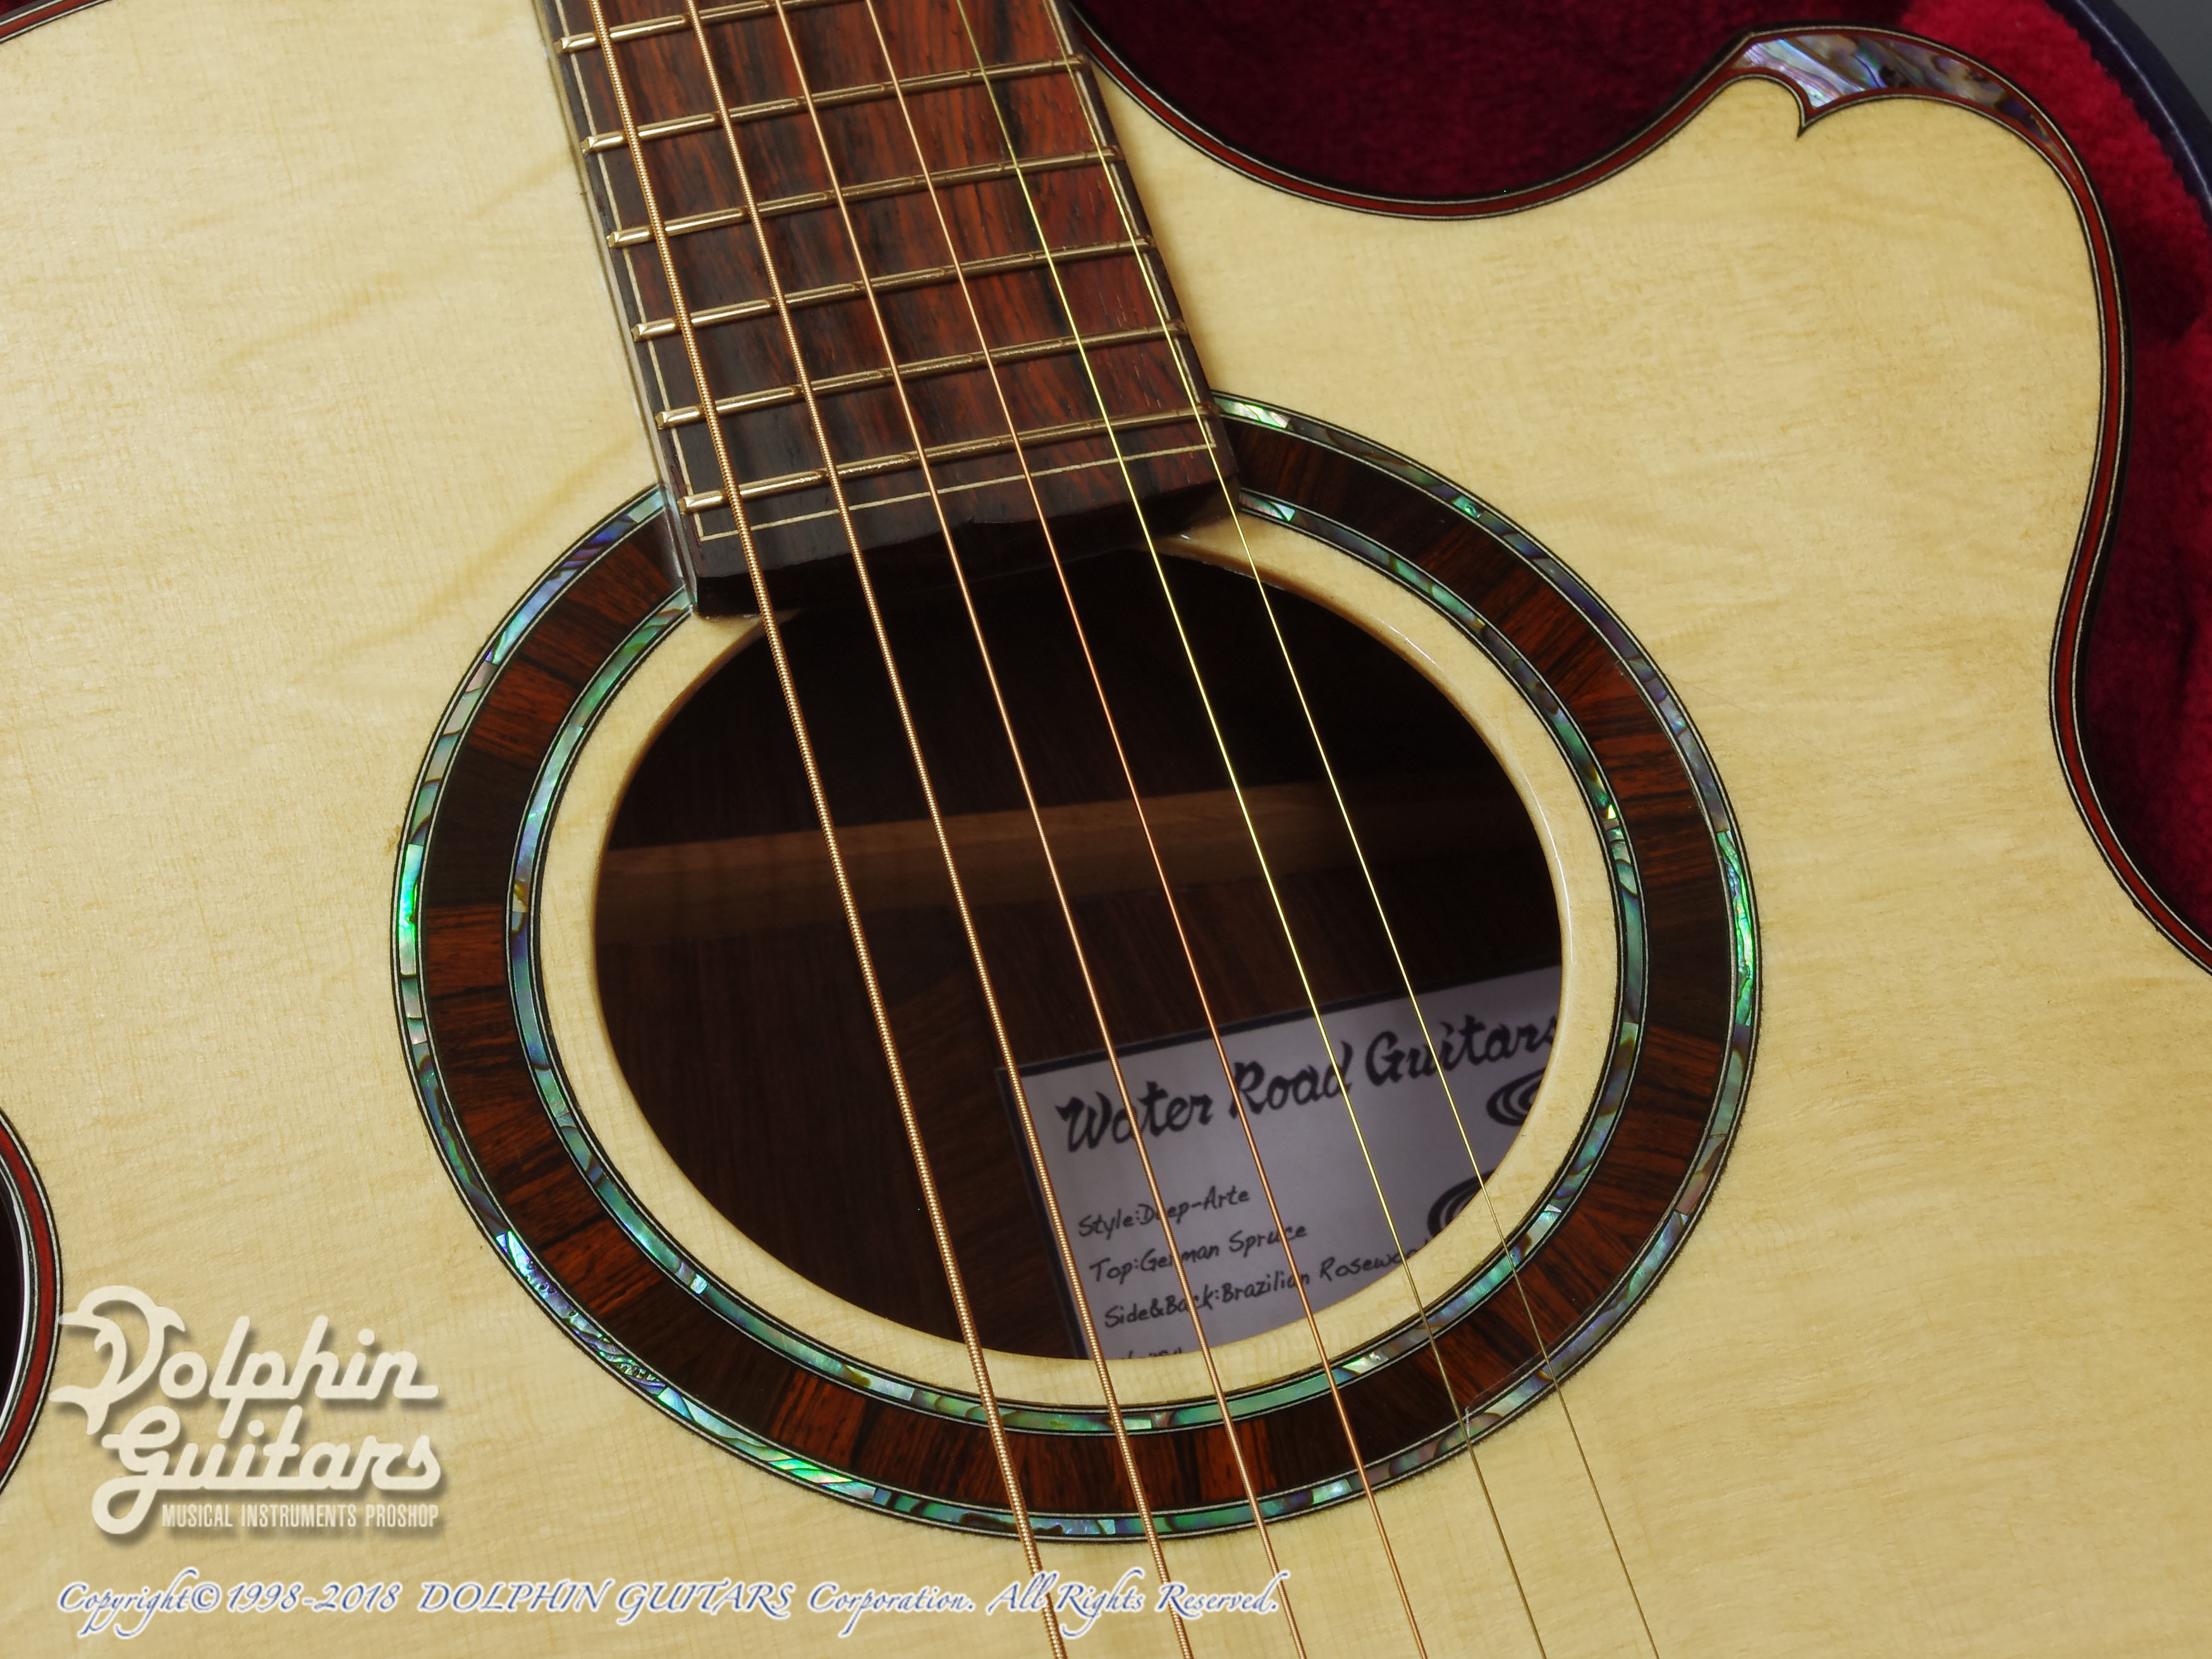 WATER ROAD GUITARS: Deep Arte (Brazilian Rosewood) (9)